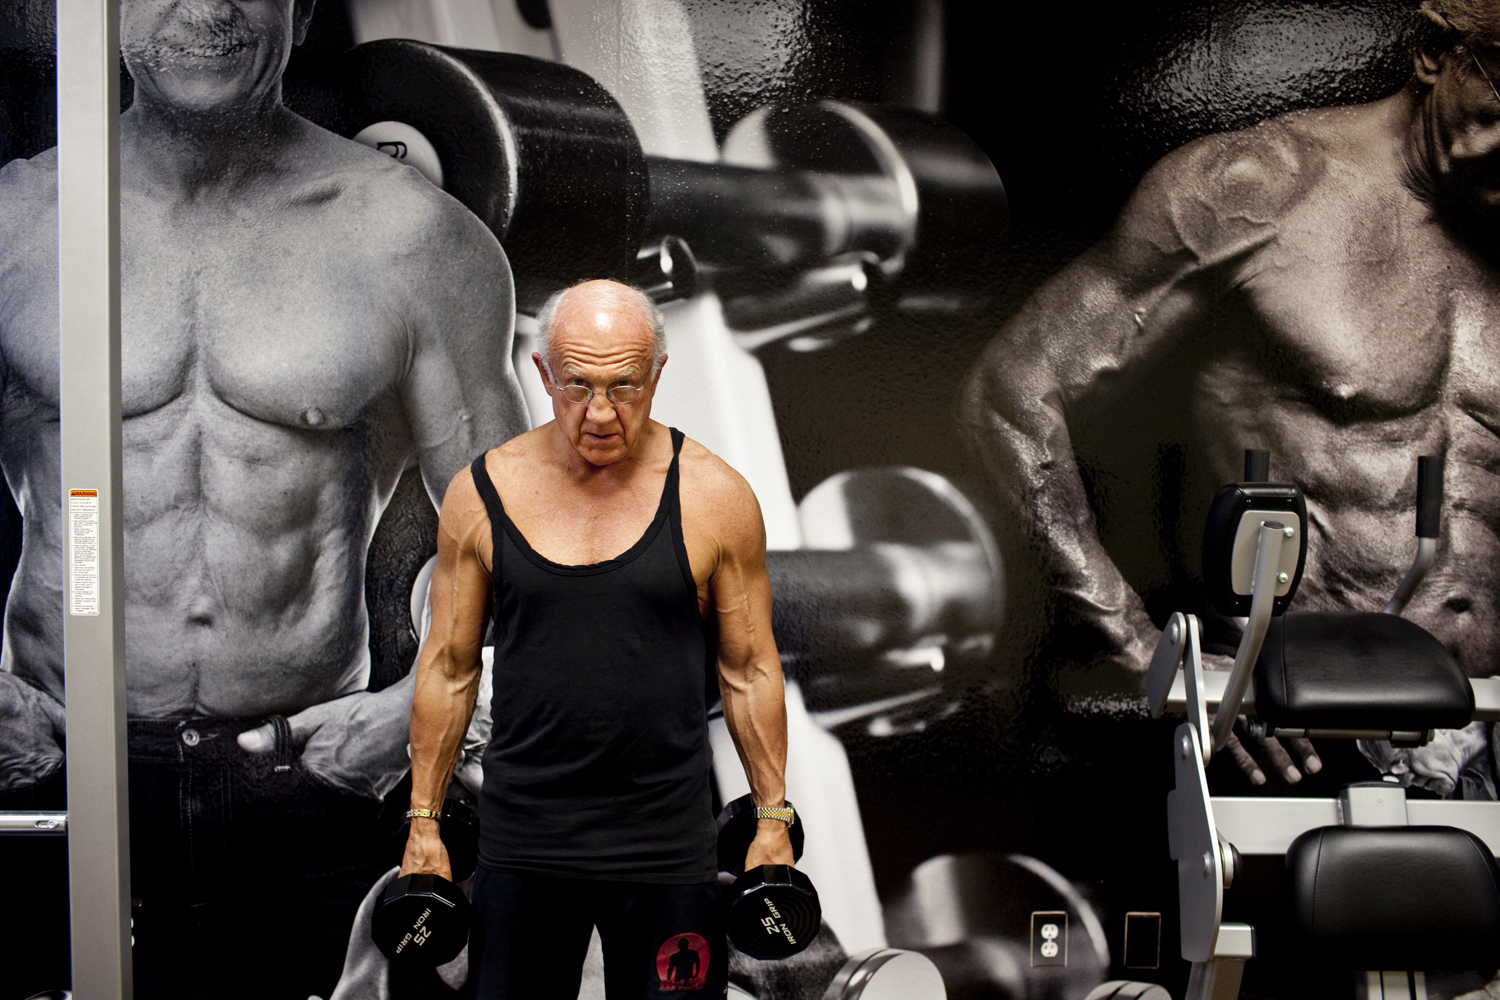 Dr. Jeffry Life after a morning workout in his Las Vegas, Nevada office, on April 4, 2011.  Dr. Life is 72 and has been a patient of Cenegenics, an age management practice, since 2003.